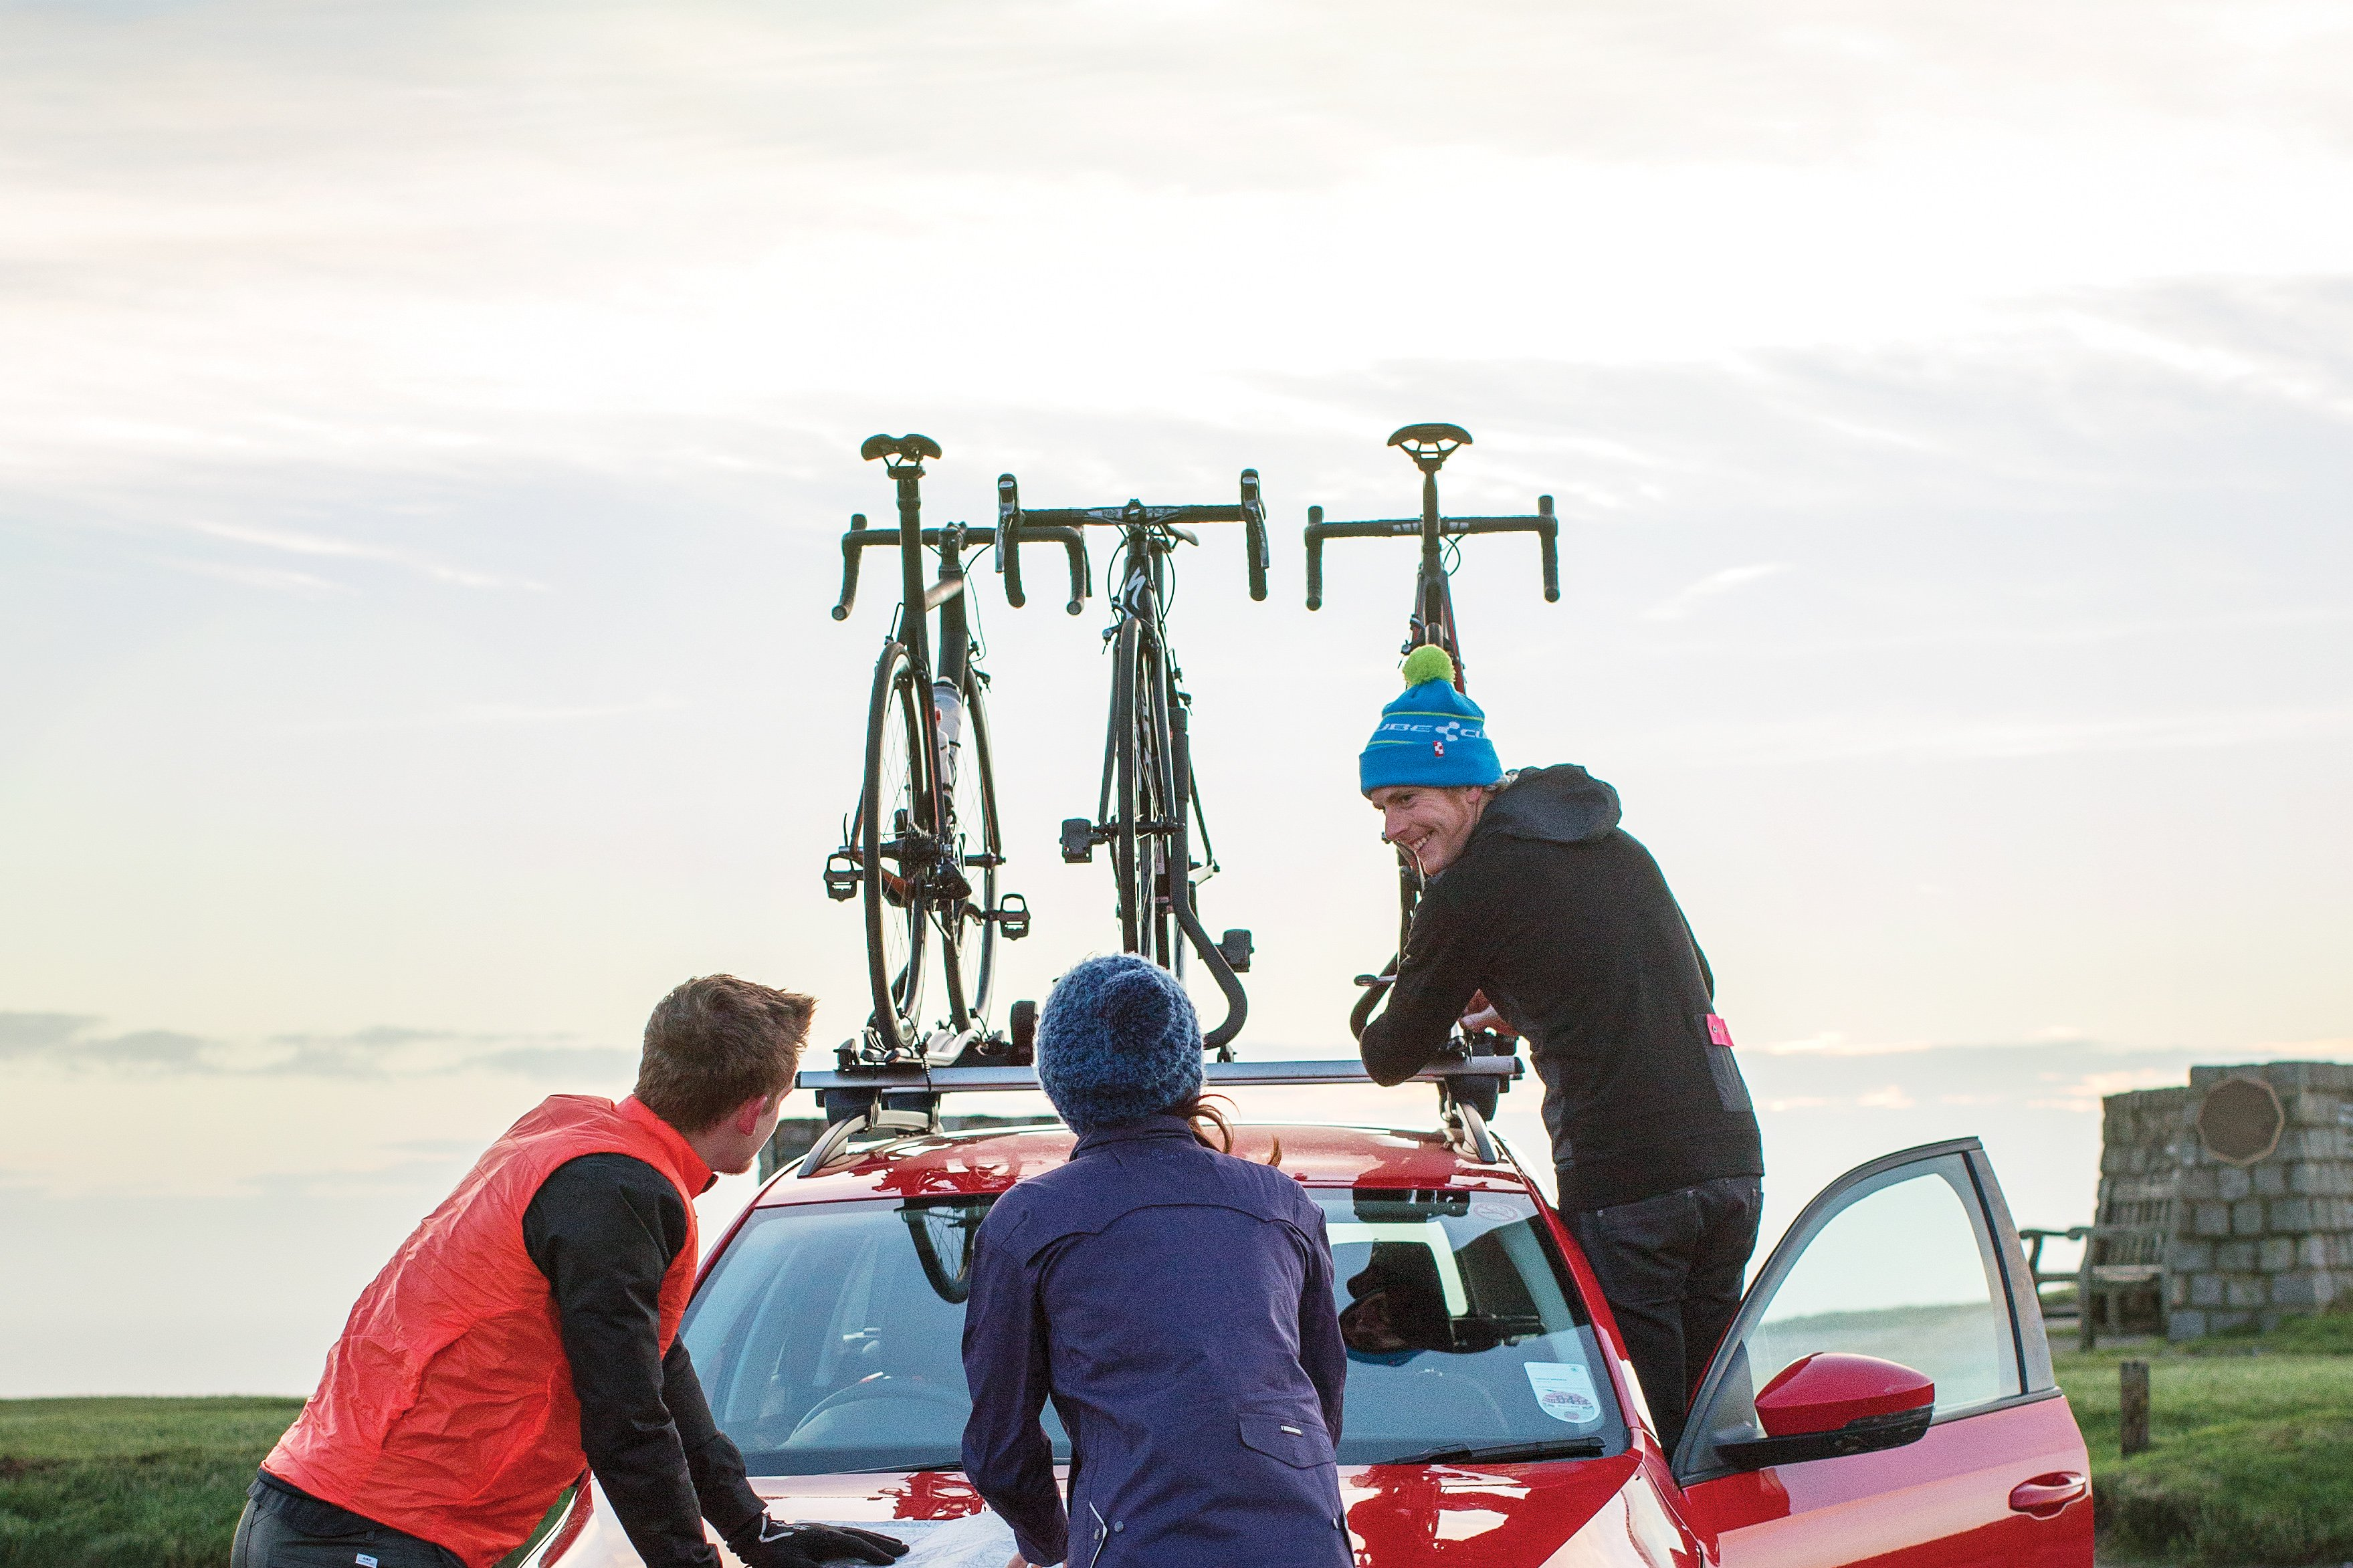 Best Bike Racks 2020 Reviewed Pros Cons Of Roof Towbar Mounted Carriers Cyclist